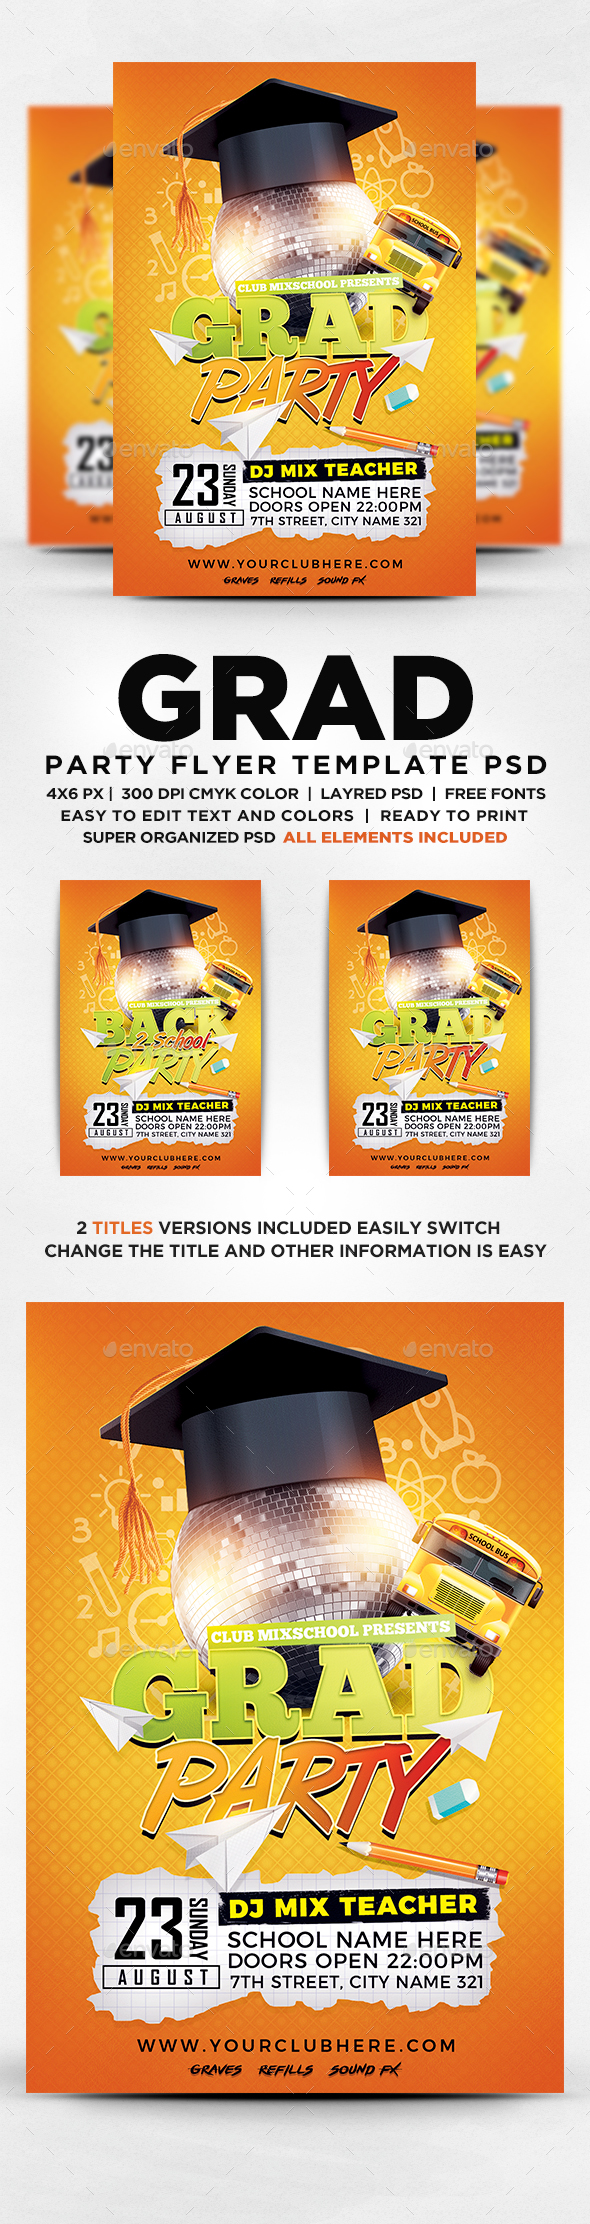 Grad Party Flyer - Flyers Print Templates